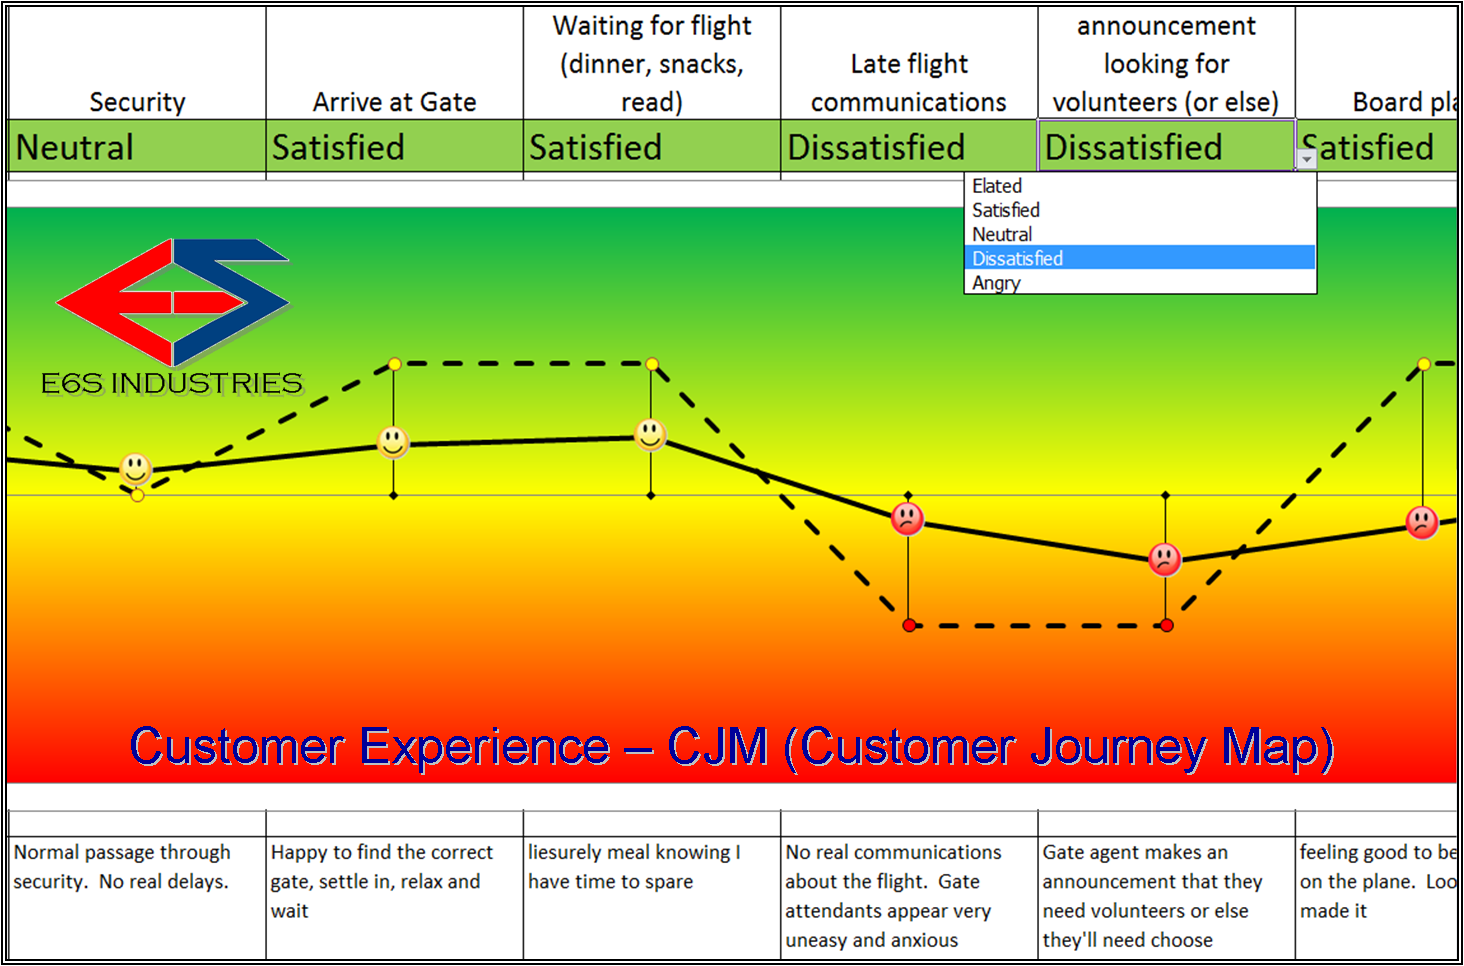 Customer Journey Map Template - Visualize the Customer Experience (CX) - $24.15 - Buy Now